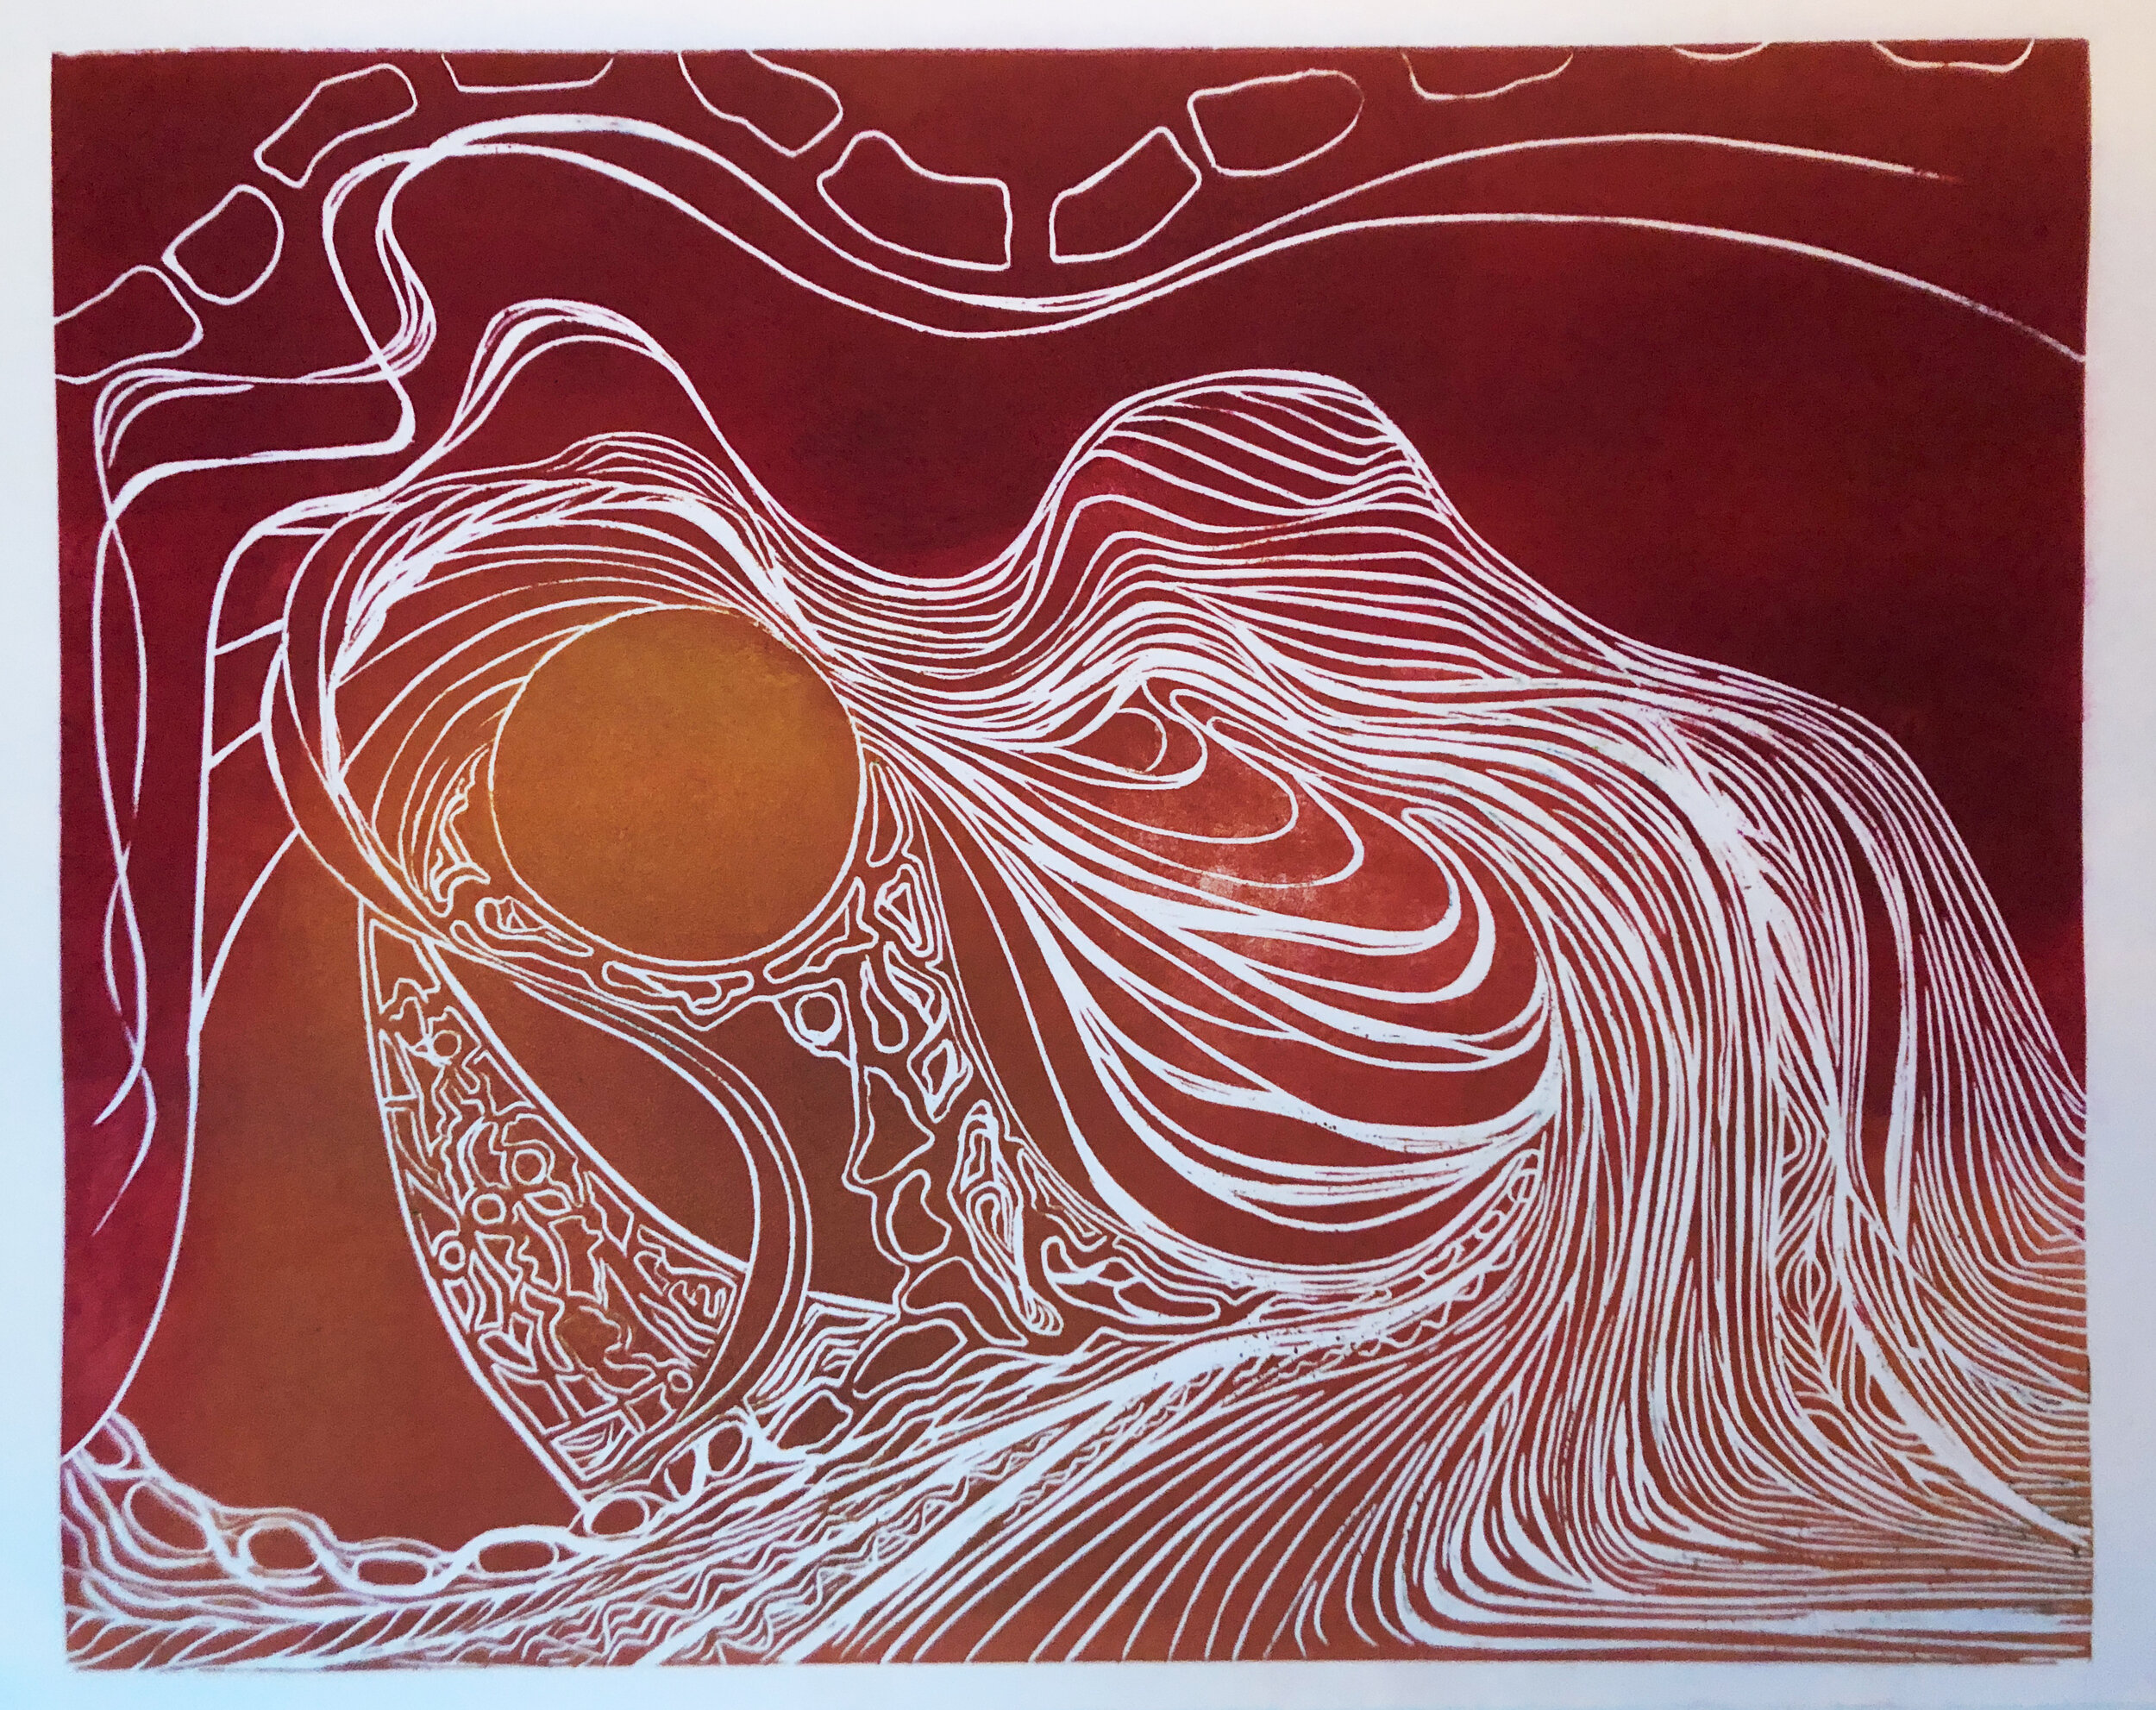 """Icon (1 of 4)    Woodcut print  16"""" x 20""""  $500  Click image to enlarge ⦿  Inquire"""